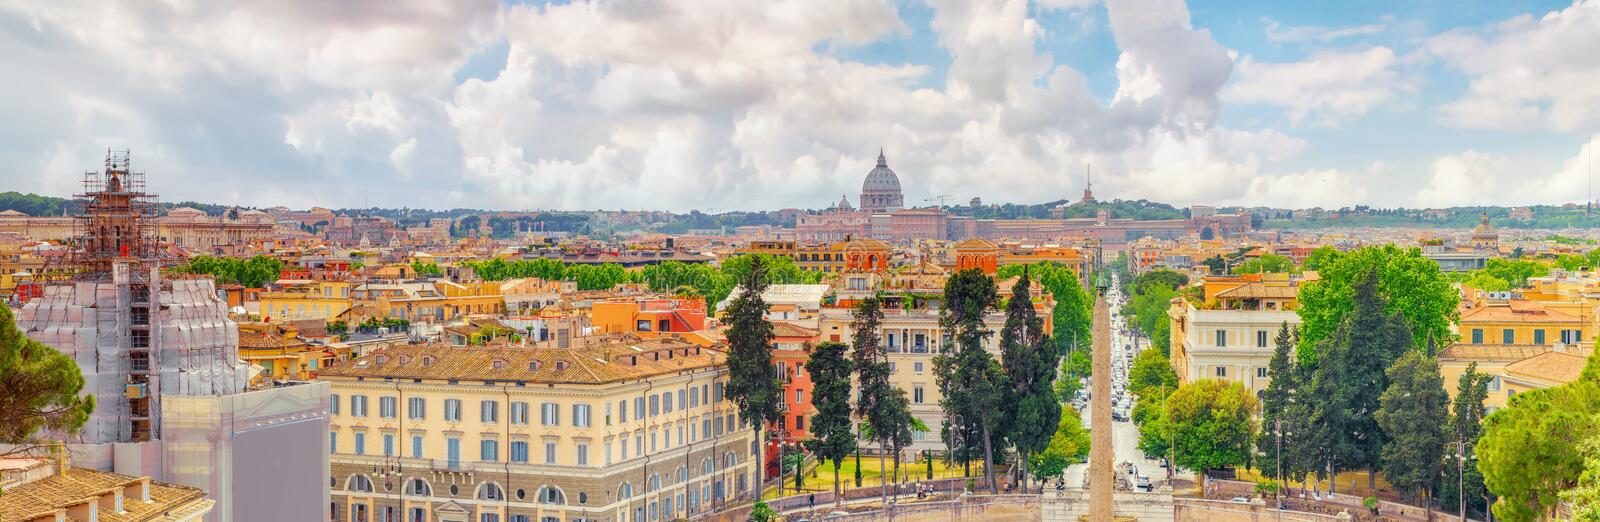 View Of The City Of Rome From Above, From The Hill Of Terrazza D ...